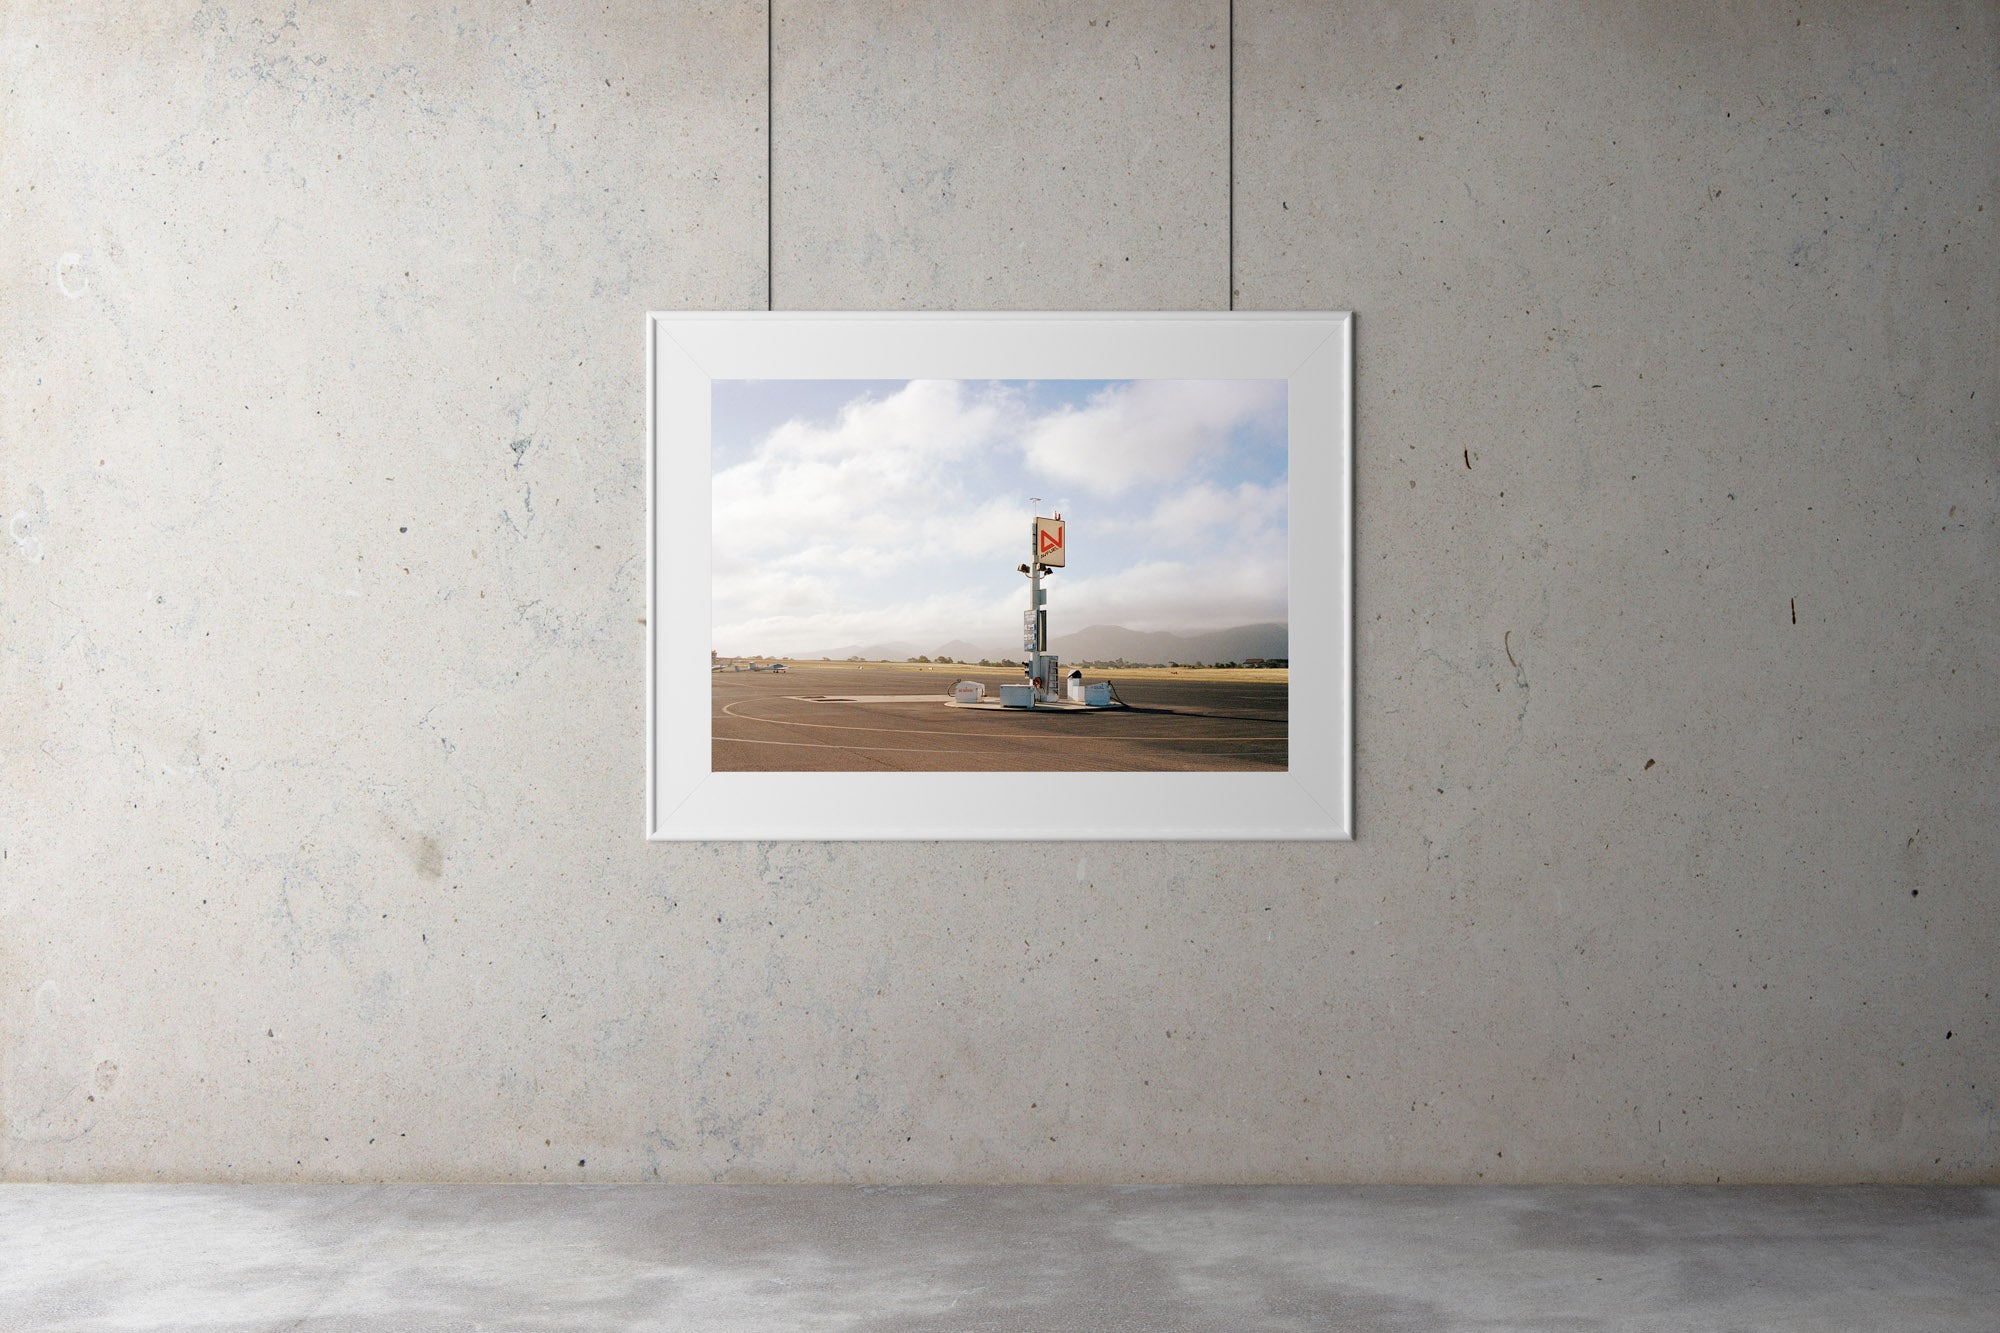 A photographic print gallery with an image on the wall. A photograph of an old airfield with a petrol filling station & old airplanes in the photo. Blue skies & clouds in the background. USA